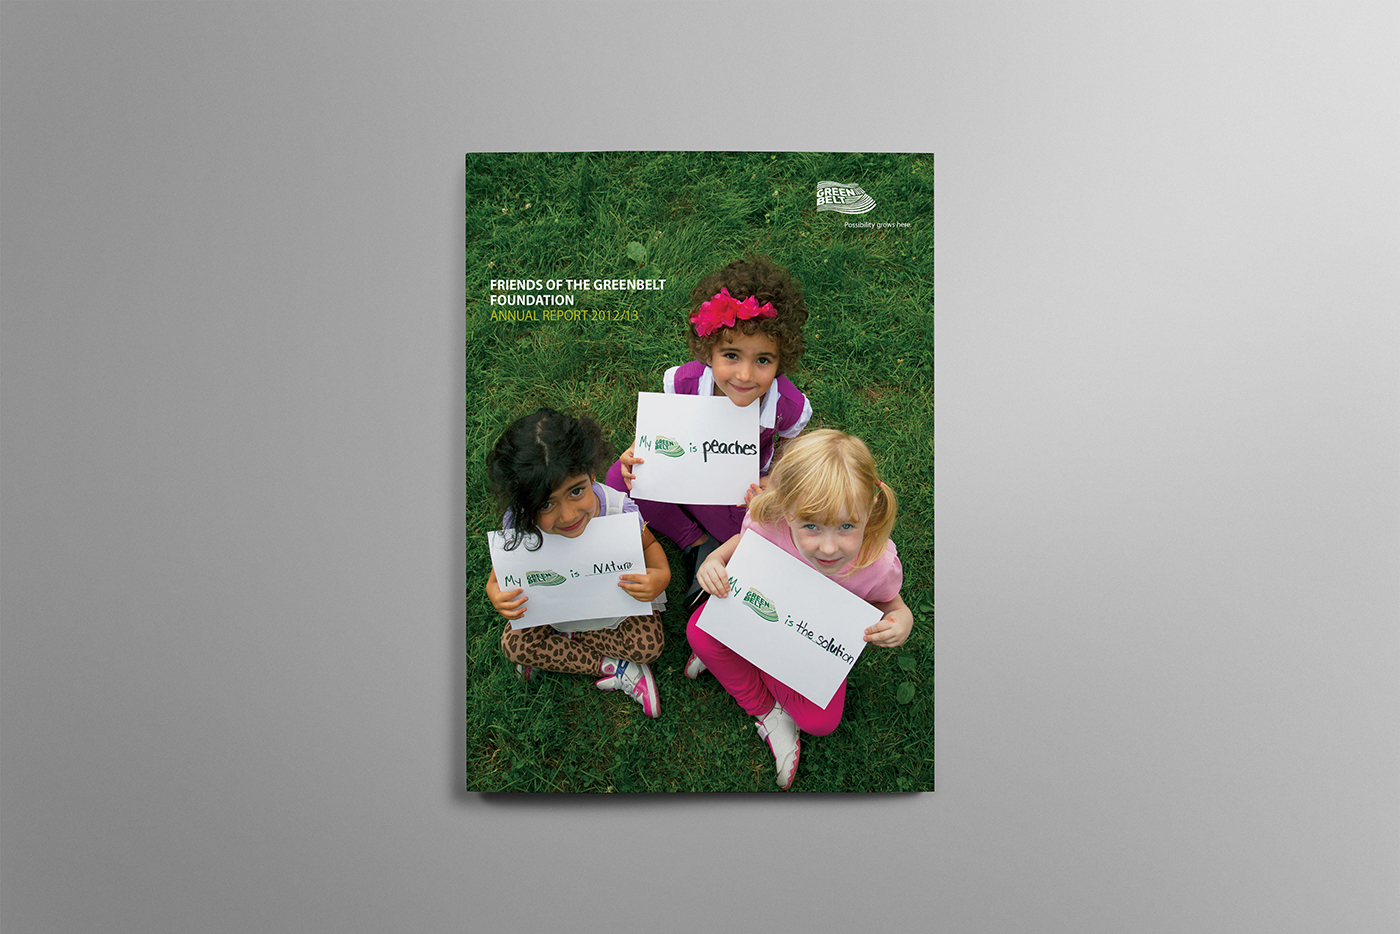 Cover for the 2012/2013 Greenbelt Foundation annual report featuring little girls speaking out about how the greenbelt is important to them.